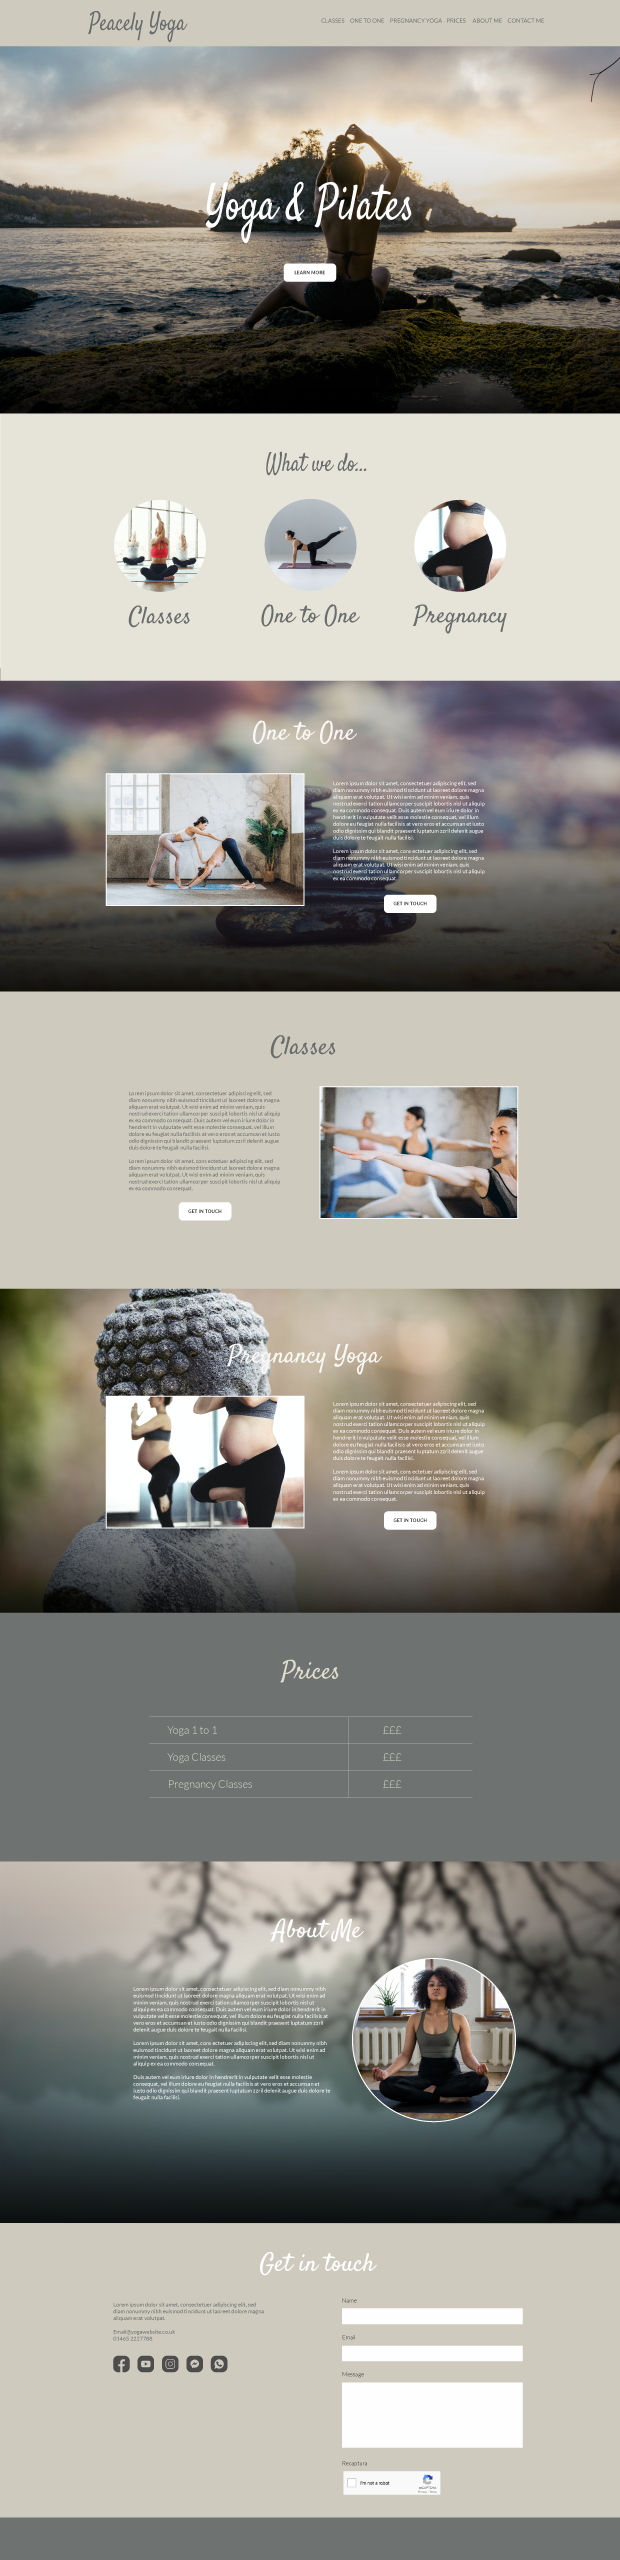 Example of a website designed for yoga or holistic practitioner